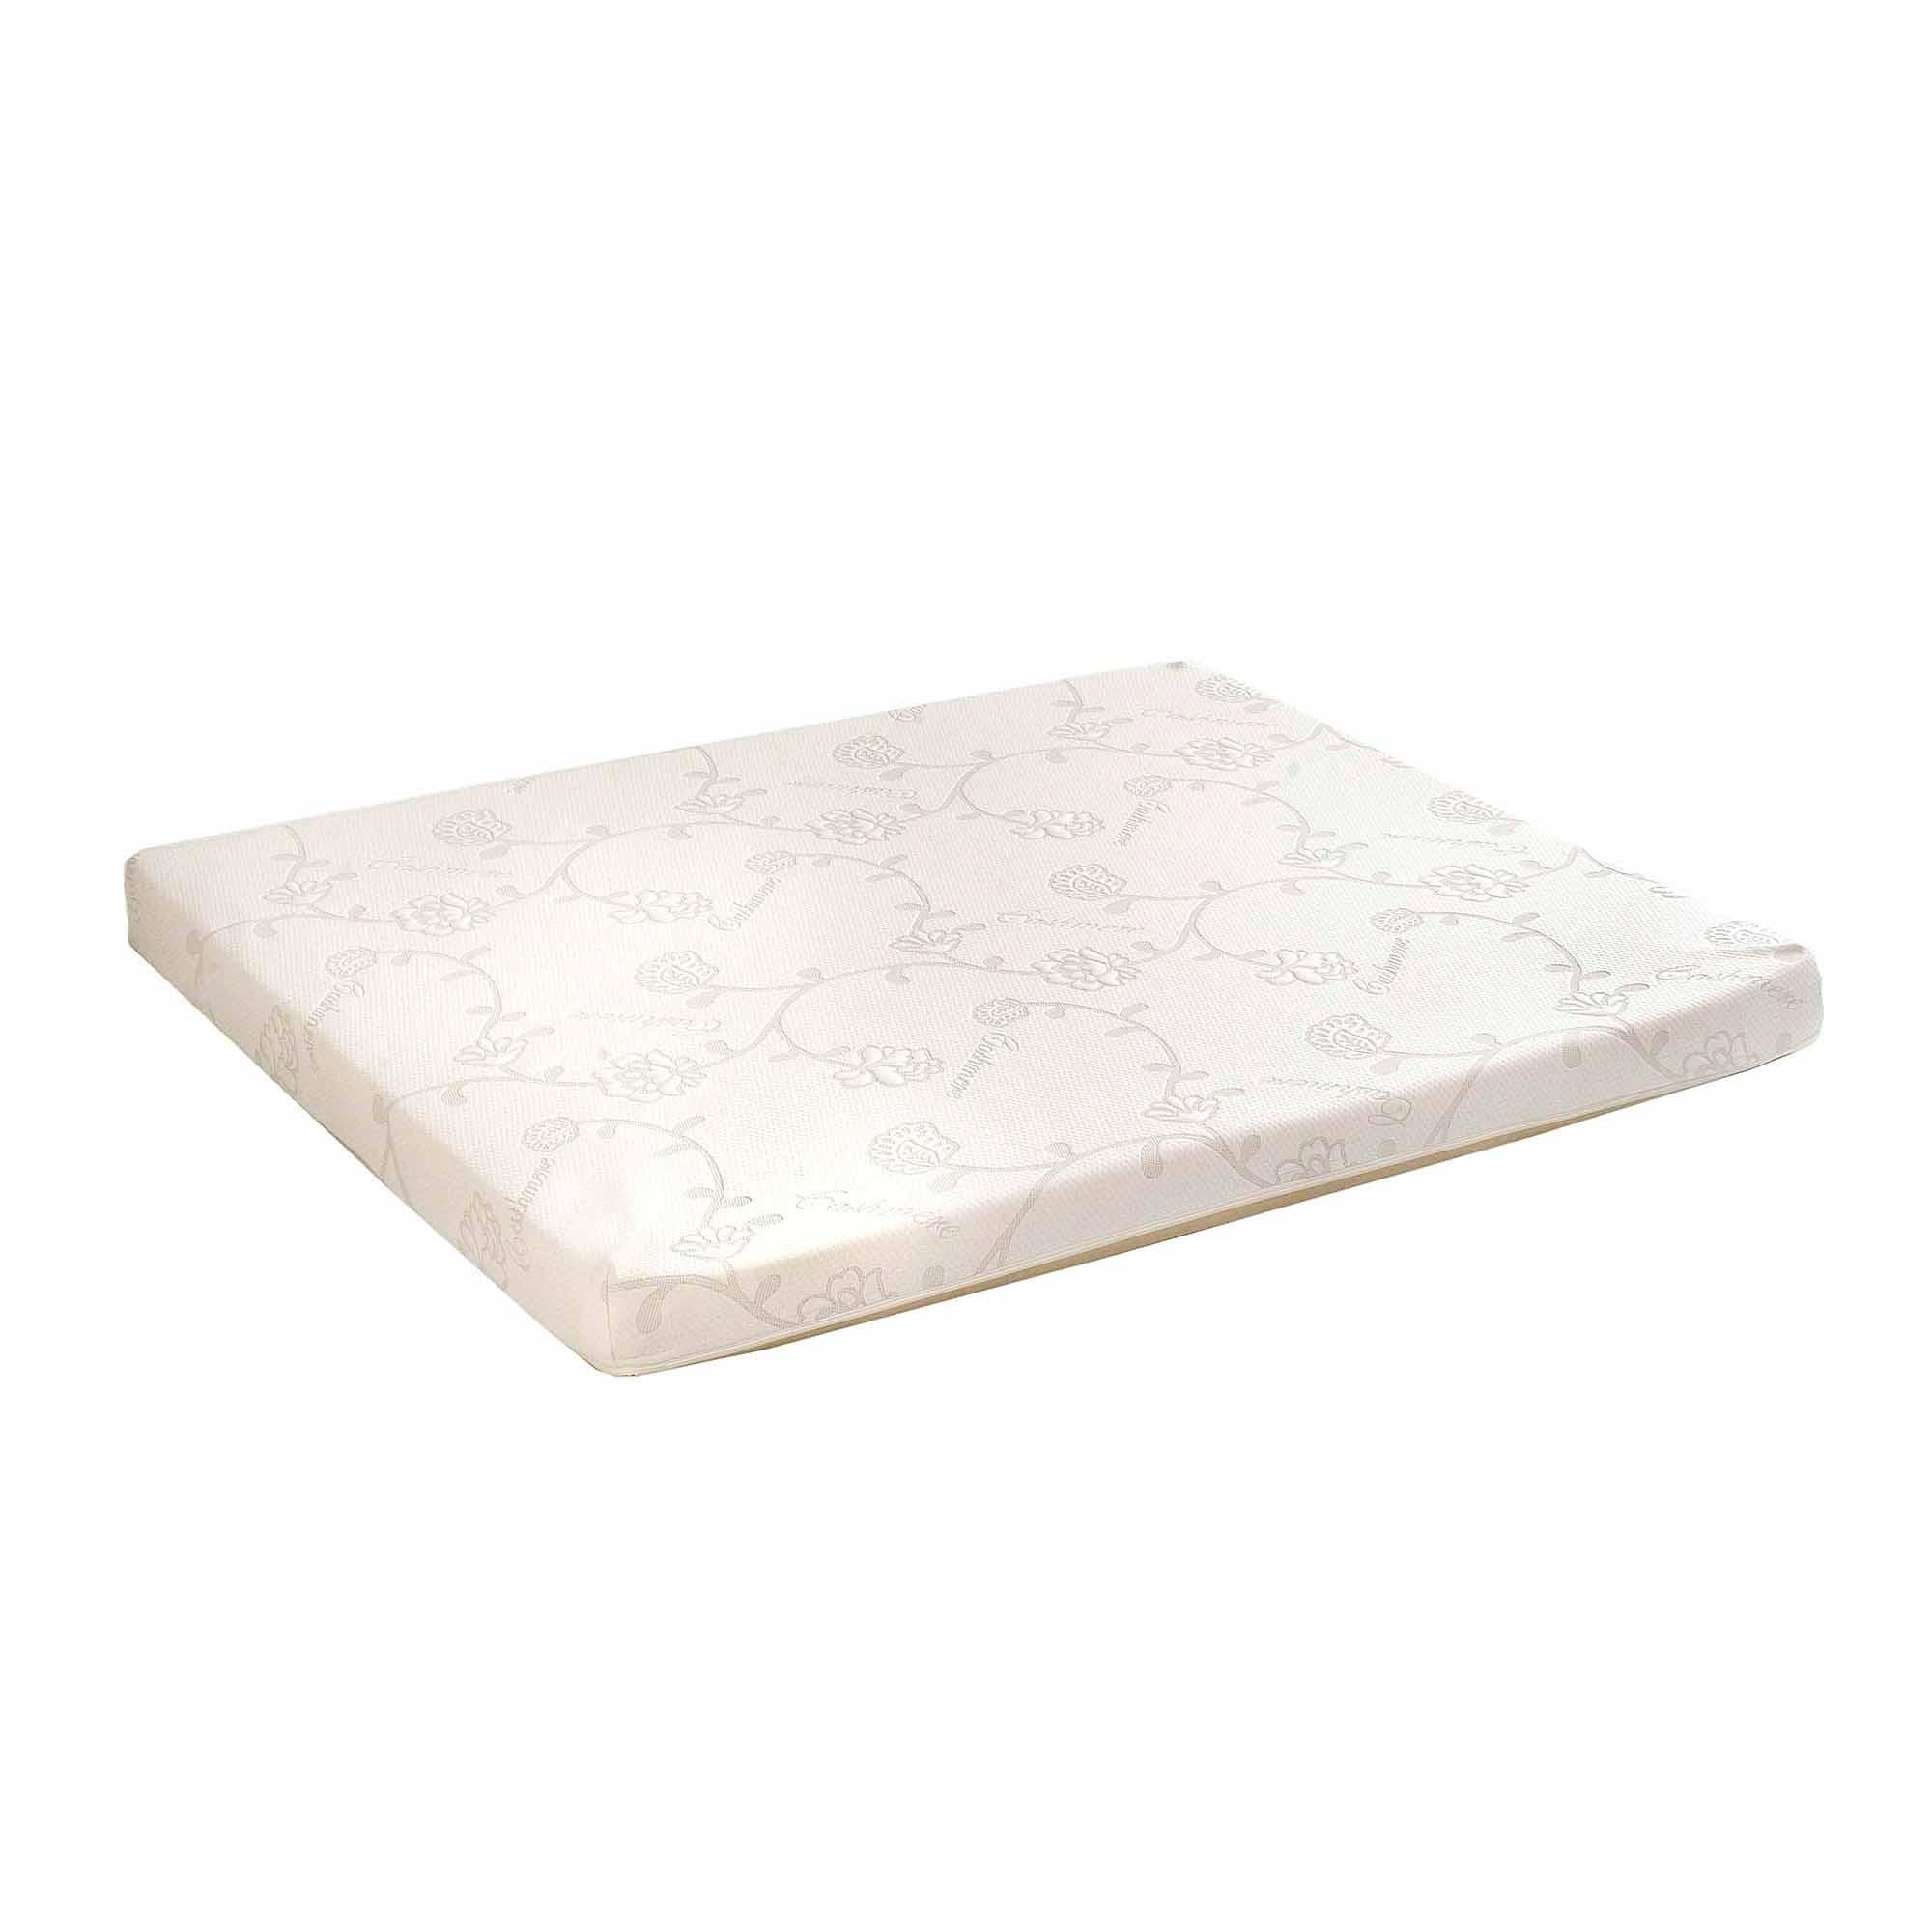 Replacement Memory Foam Sleeper Sofa Mattress With Removable Cover Throughout Sleeper Sofas Mattress Covers (Image 5 of 20)